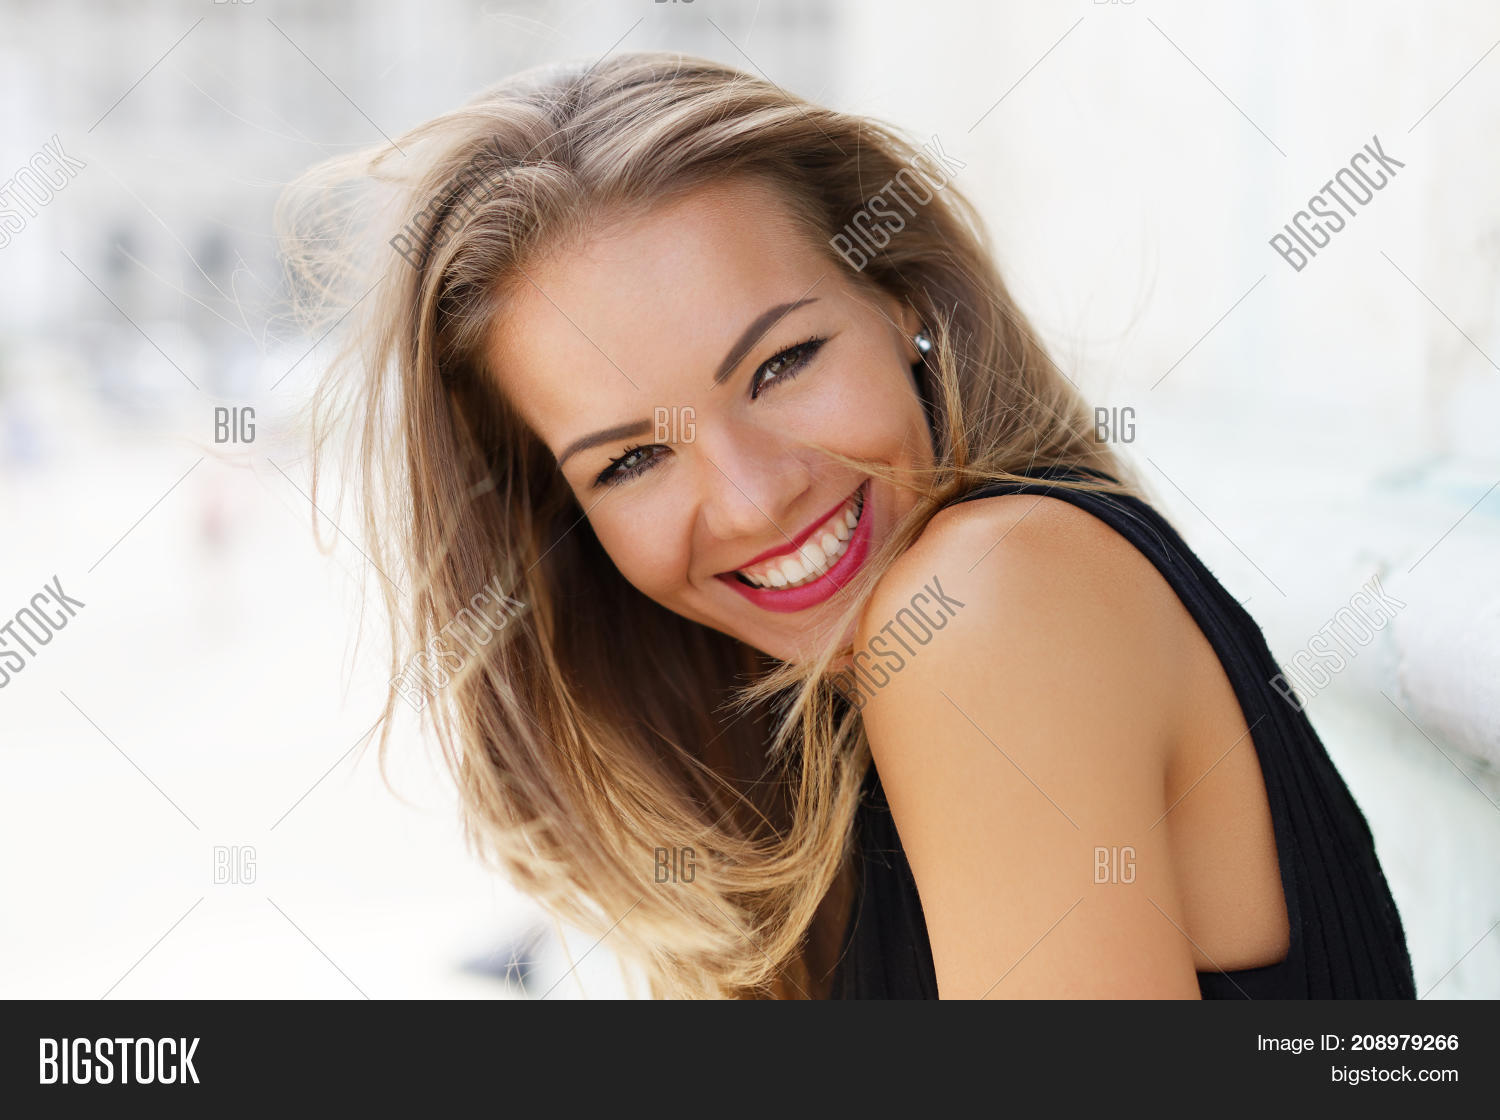 attractive,beautiful,beauty,bright,brunette,carefree,caucasian,cheerful,closeup,enjoy,face,female,fun,girl,hair,happiness,happy,holiday,joy,leisure,lifestyle,model,one,outdoors,people,person,portrait,positive,pretty,sexy,smile,smiling,style,summer,teeth,toothy,vacation,white,woman,young